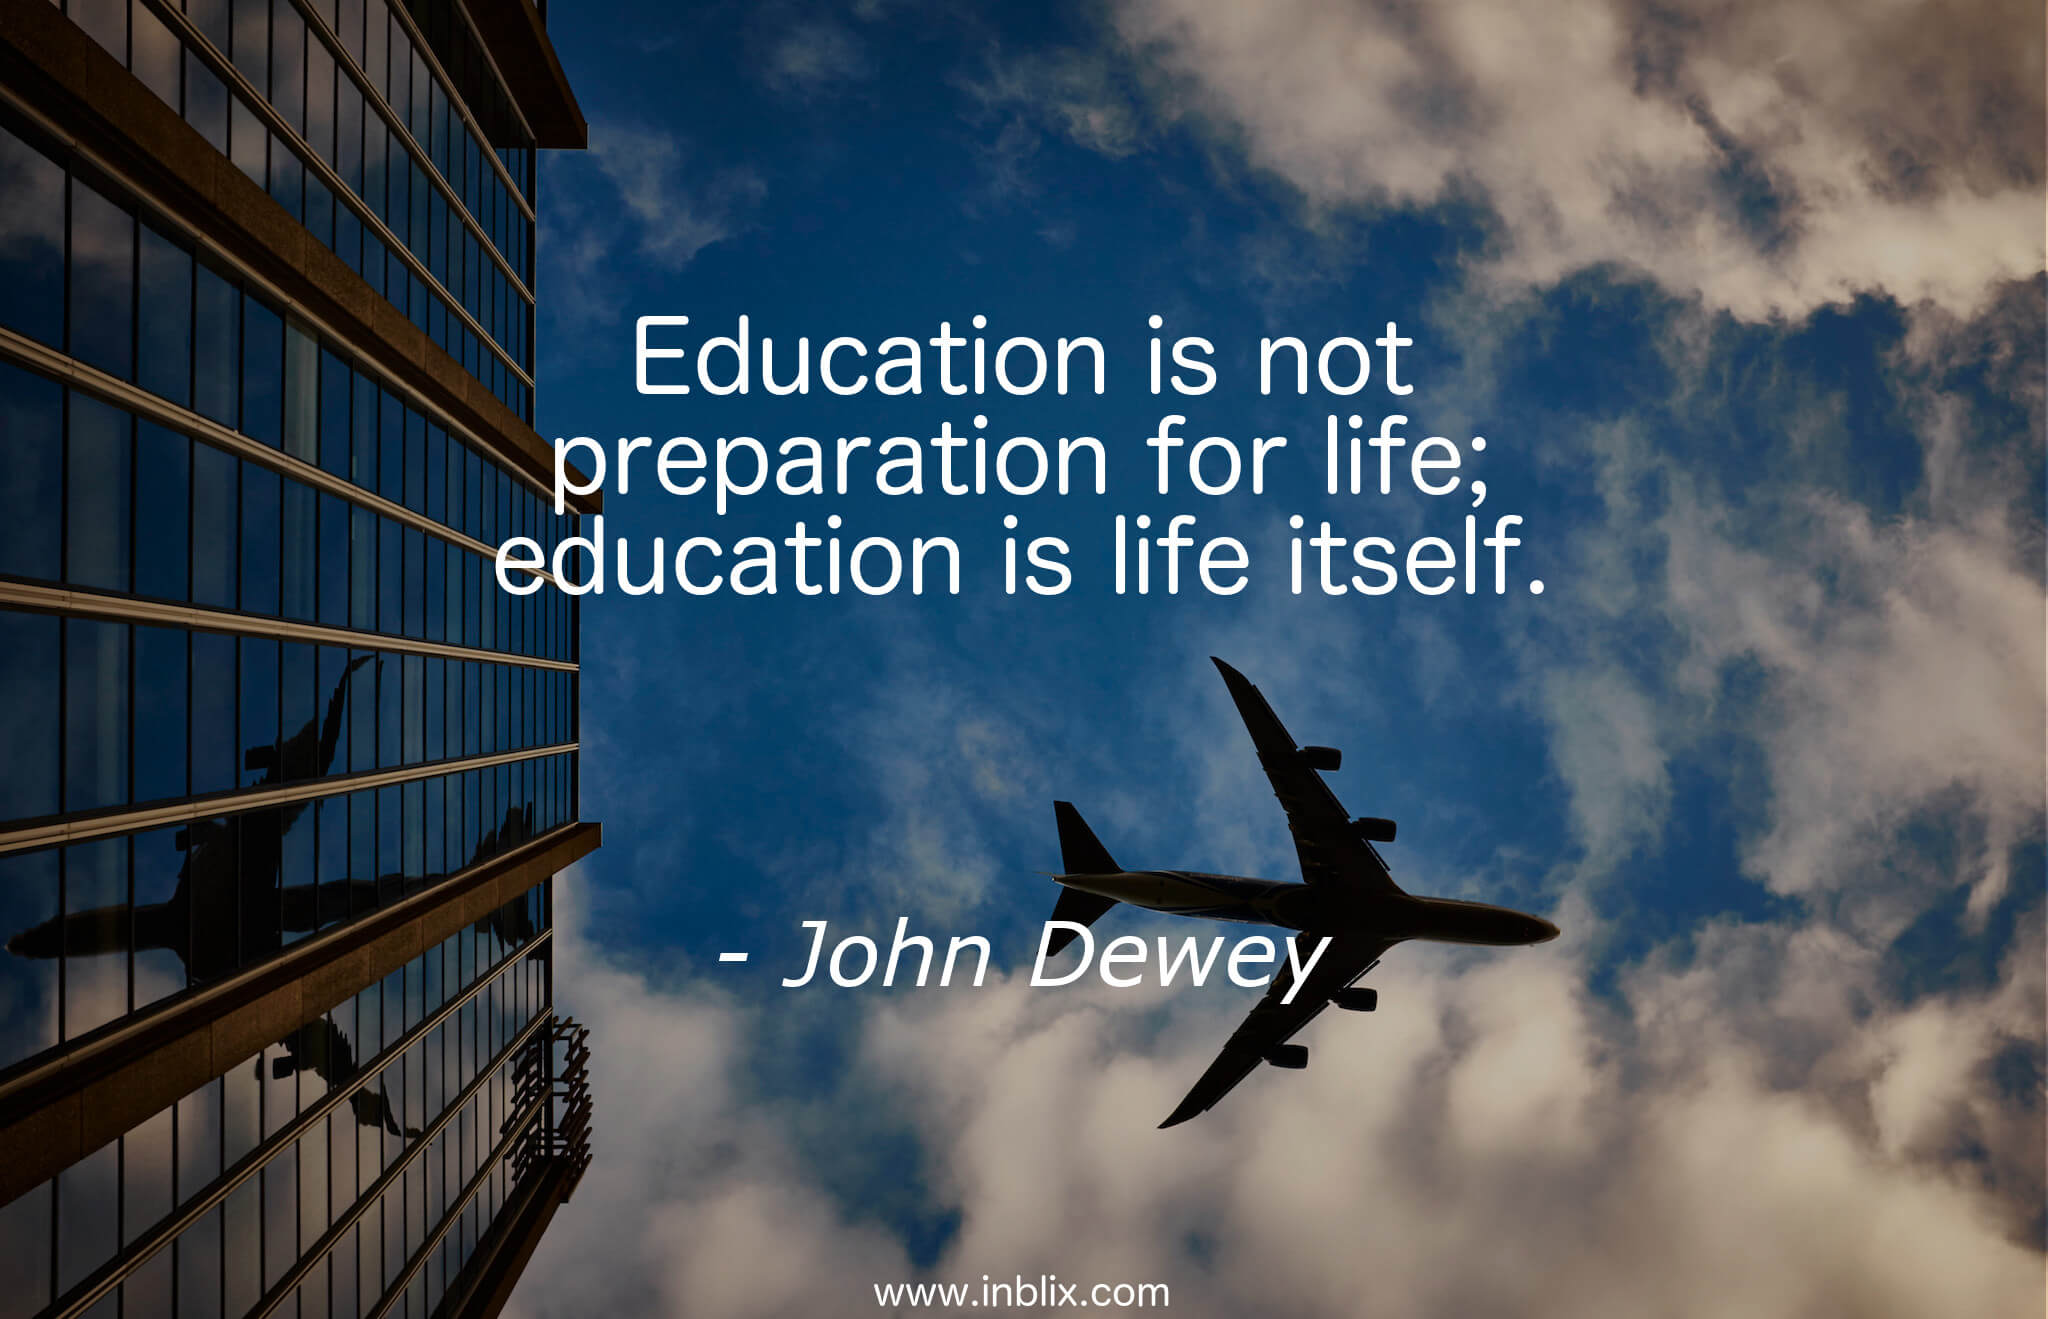 Education is not preparation for life; education is life itself.